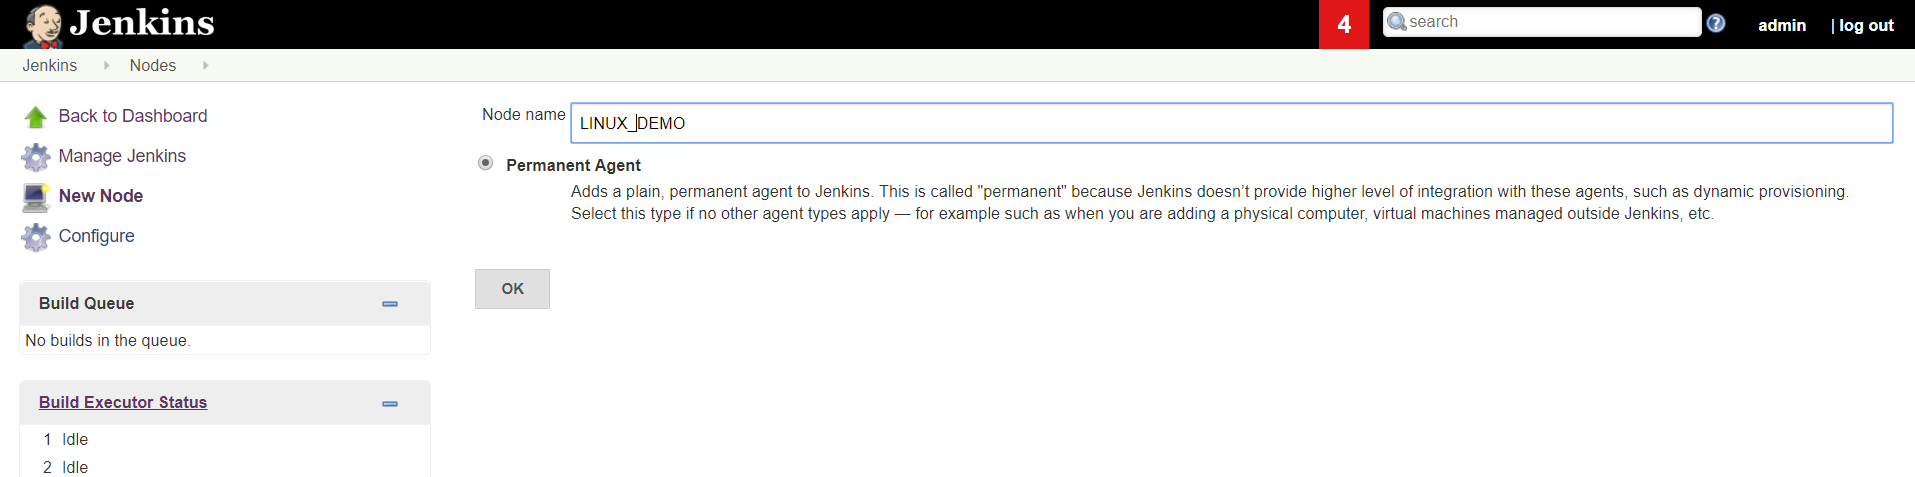 Jenkins Configuration- Windows as Master and Linux as Slave